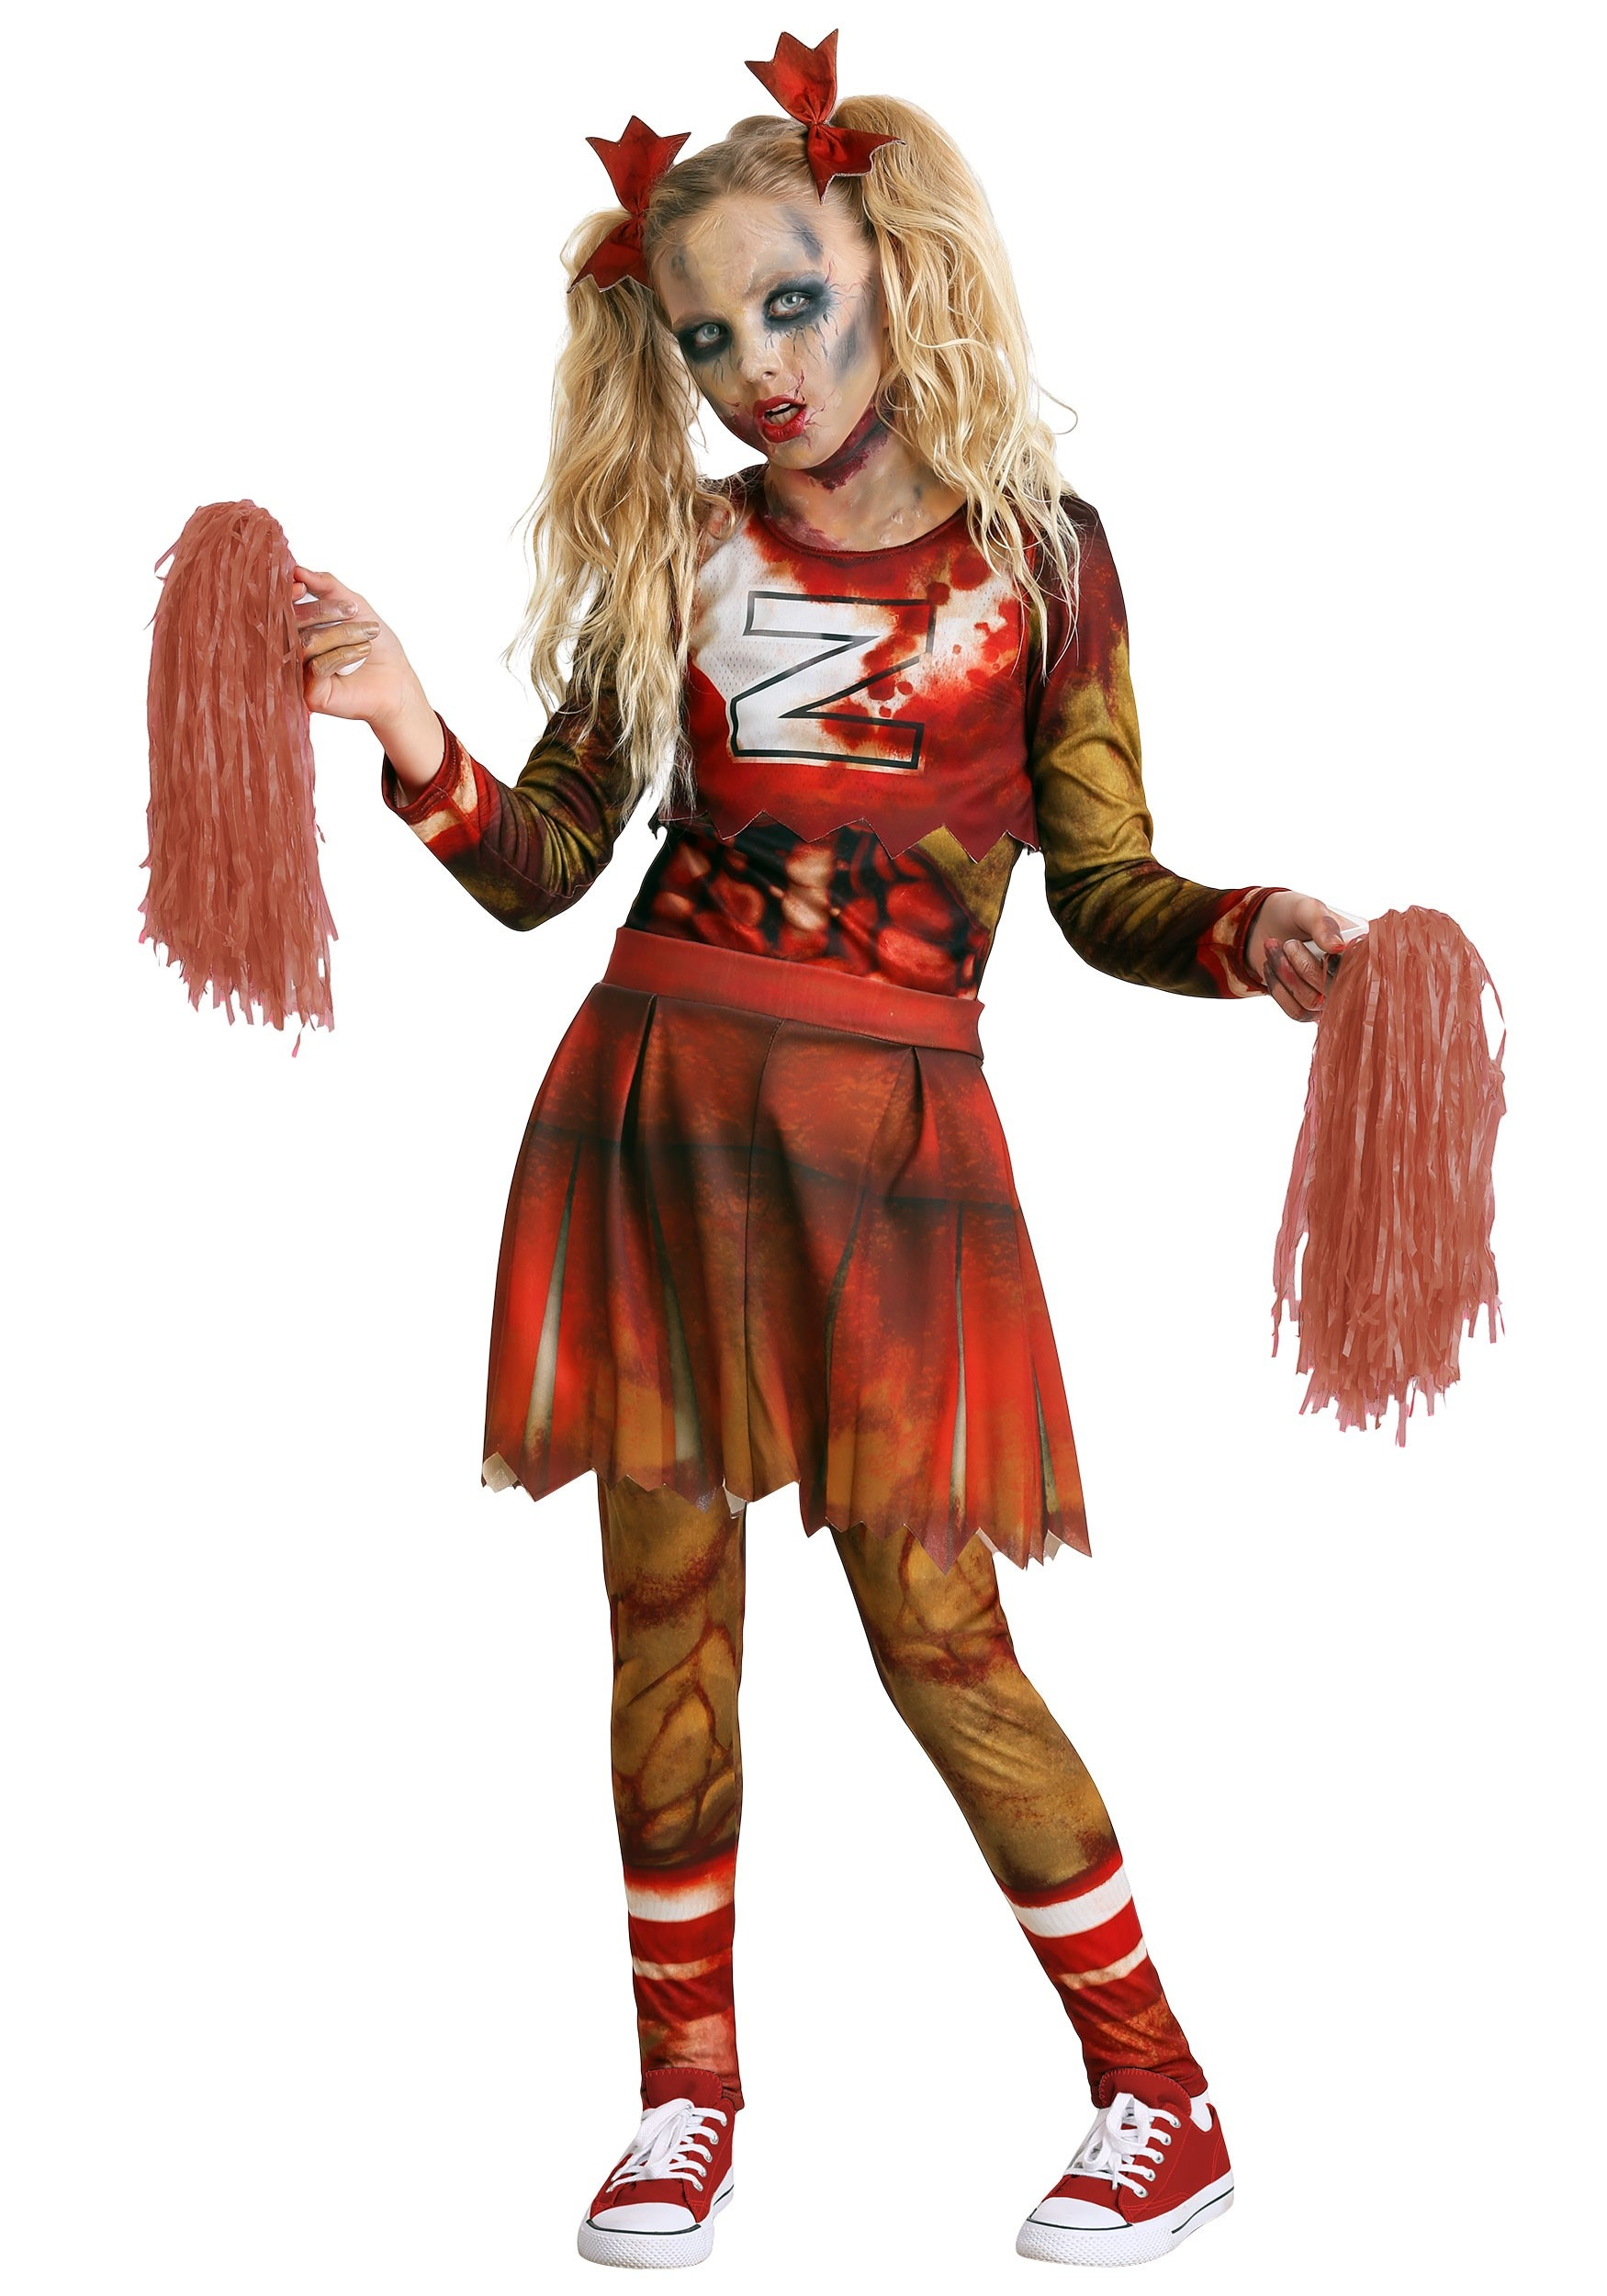 ZOMBIE CHEERLEADER HALLOWEEN OUTFIT WITH TIGHTS AND BLOOD